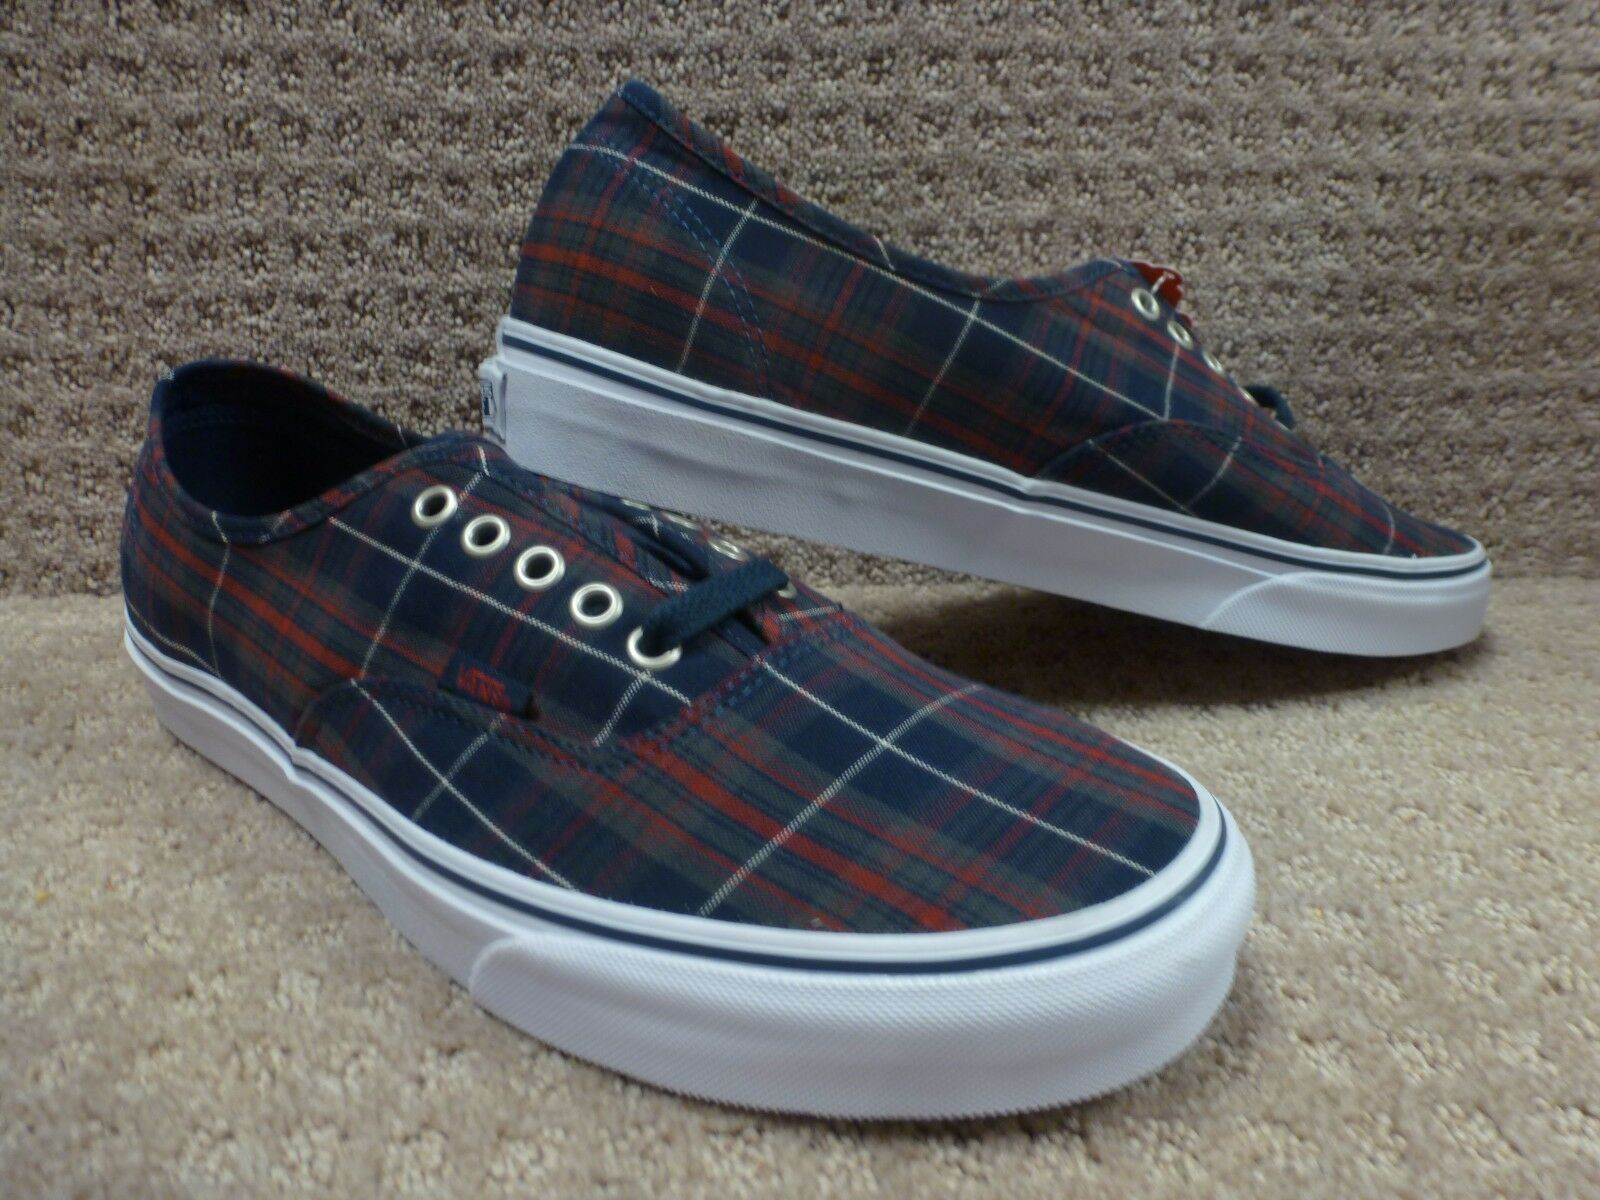 Vans Men's shoes's Authentic -- (Plaid) Dress blueess, Size 11